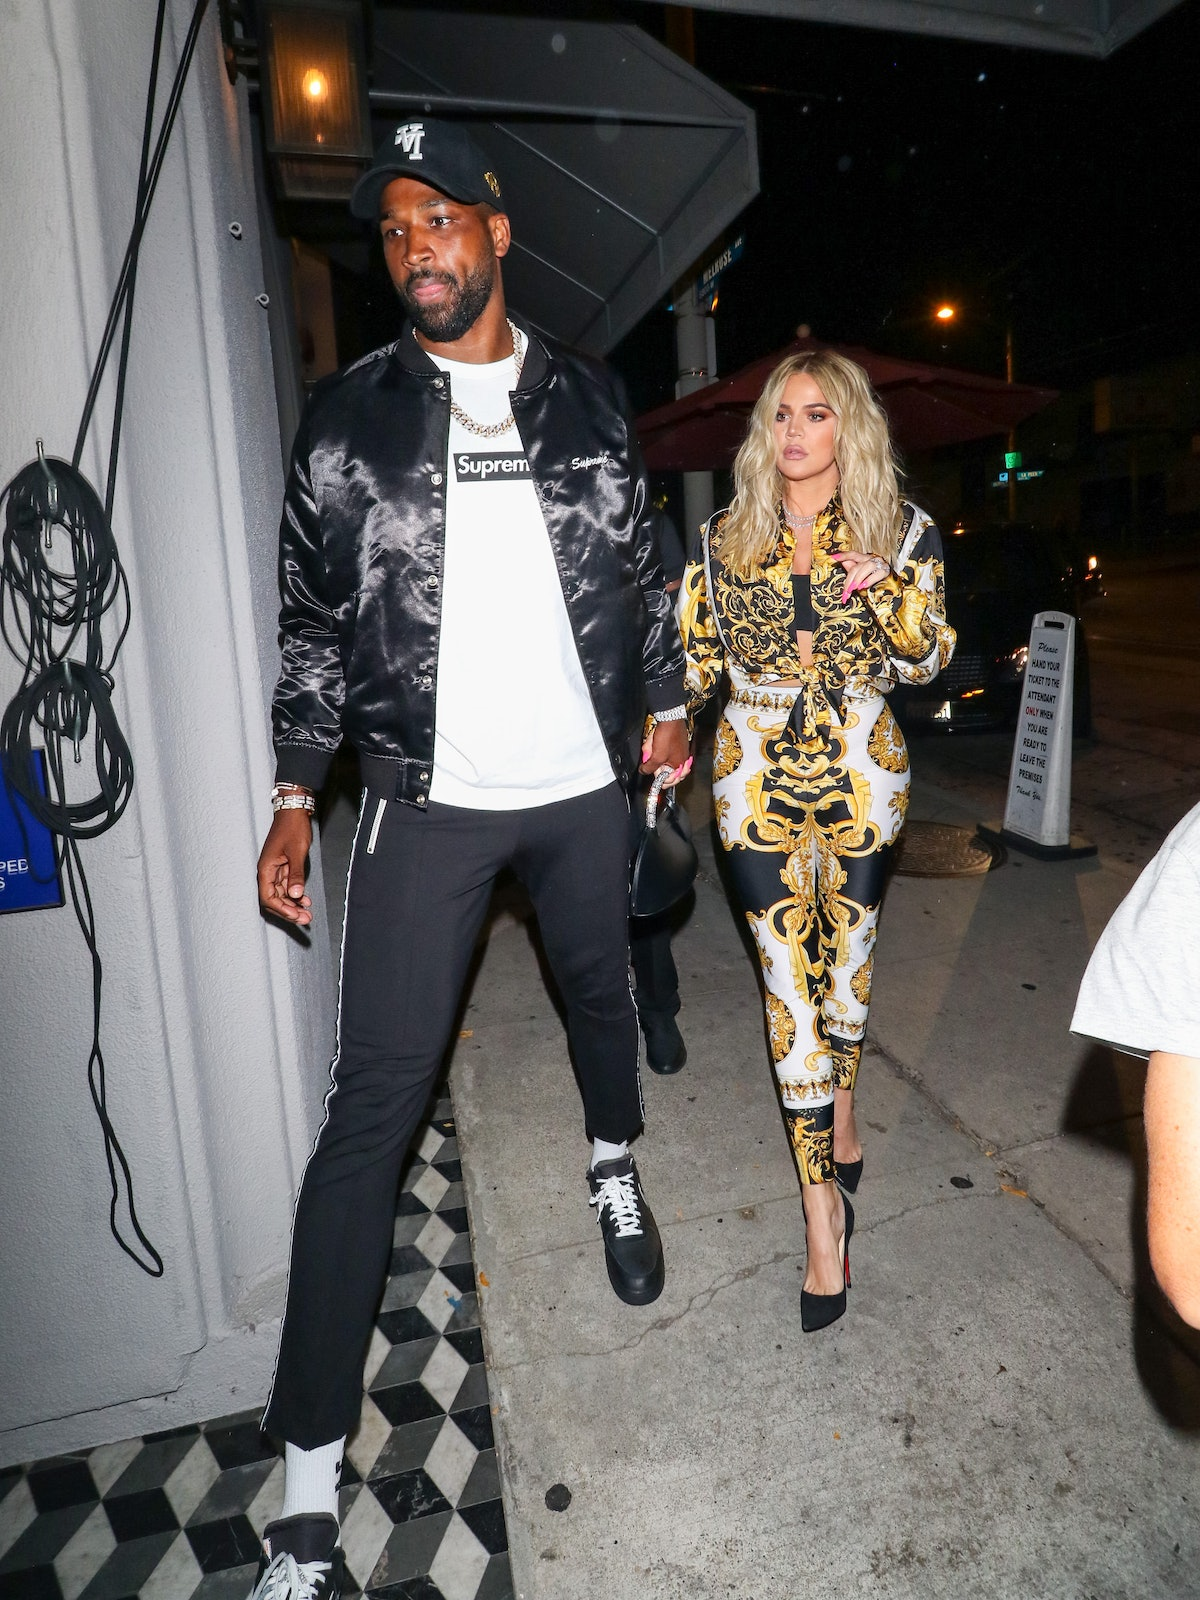 LOS ANGELES, CA - AUGUST 17: Khloe Kardashian and Tristan Thompson are seen on August 17, 2018 in Lo...